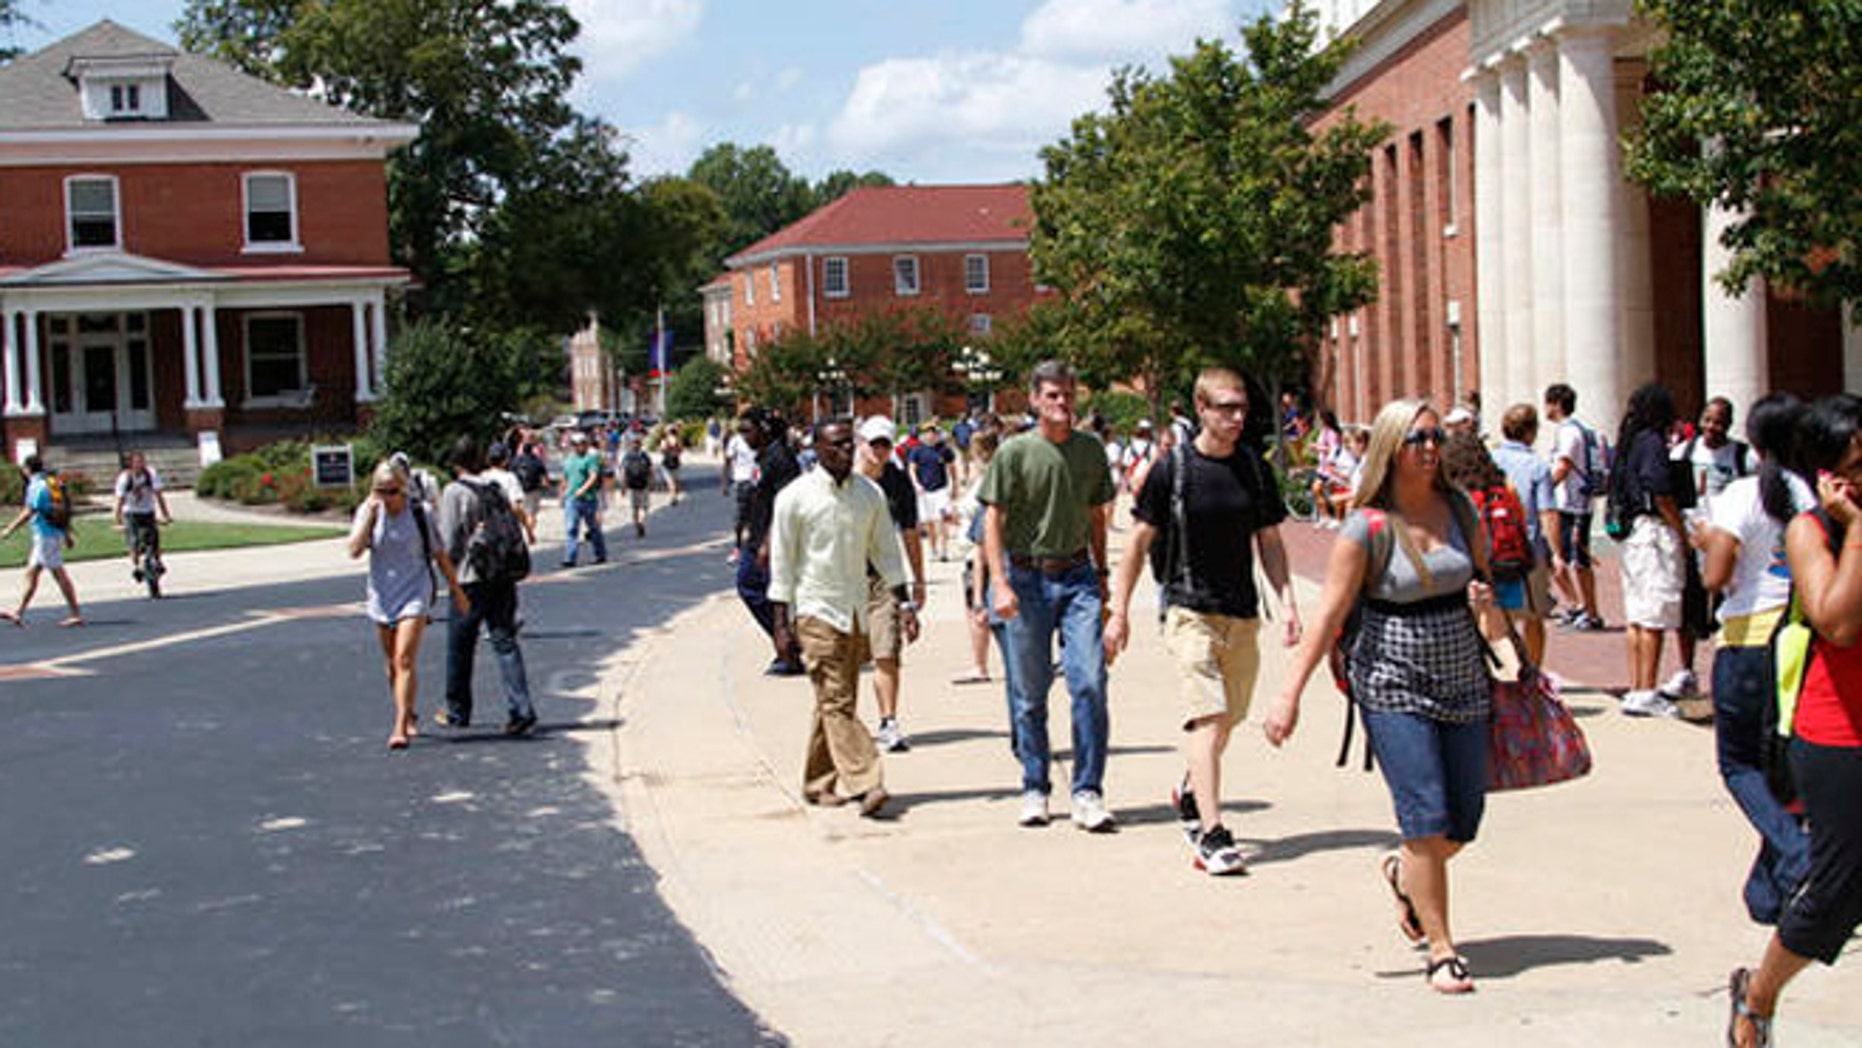 Students rush to class at the University of Mississippi, Sept. 1, 2010, in Oxford, Miss. Fiscal cuts from state funding are expected to affect all of the state's eight public colleges and may force faculty and staff layoffs, program eliminations and cuts in classes and services offered to students as well as raise various fees at the schools while they try to lessen the loss of funds.  (AP Photo/Rogelio V. Solis)